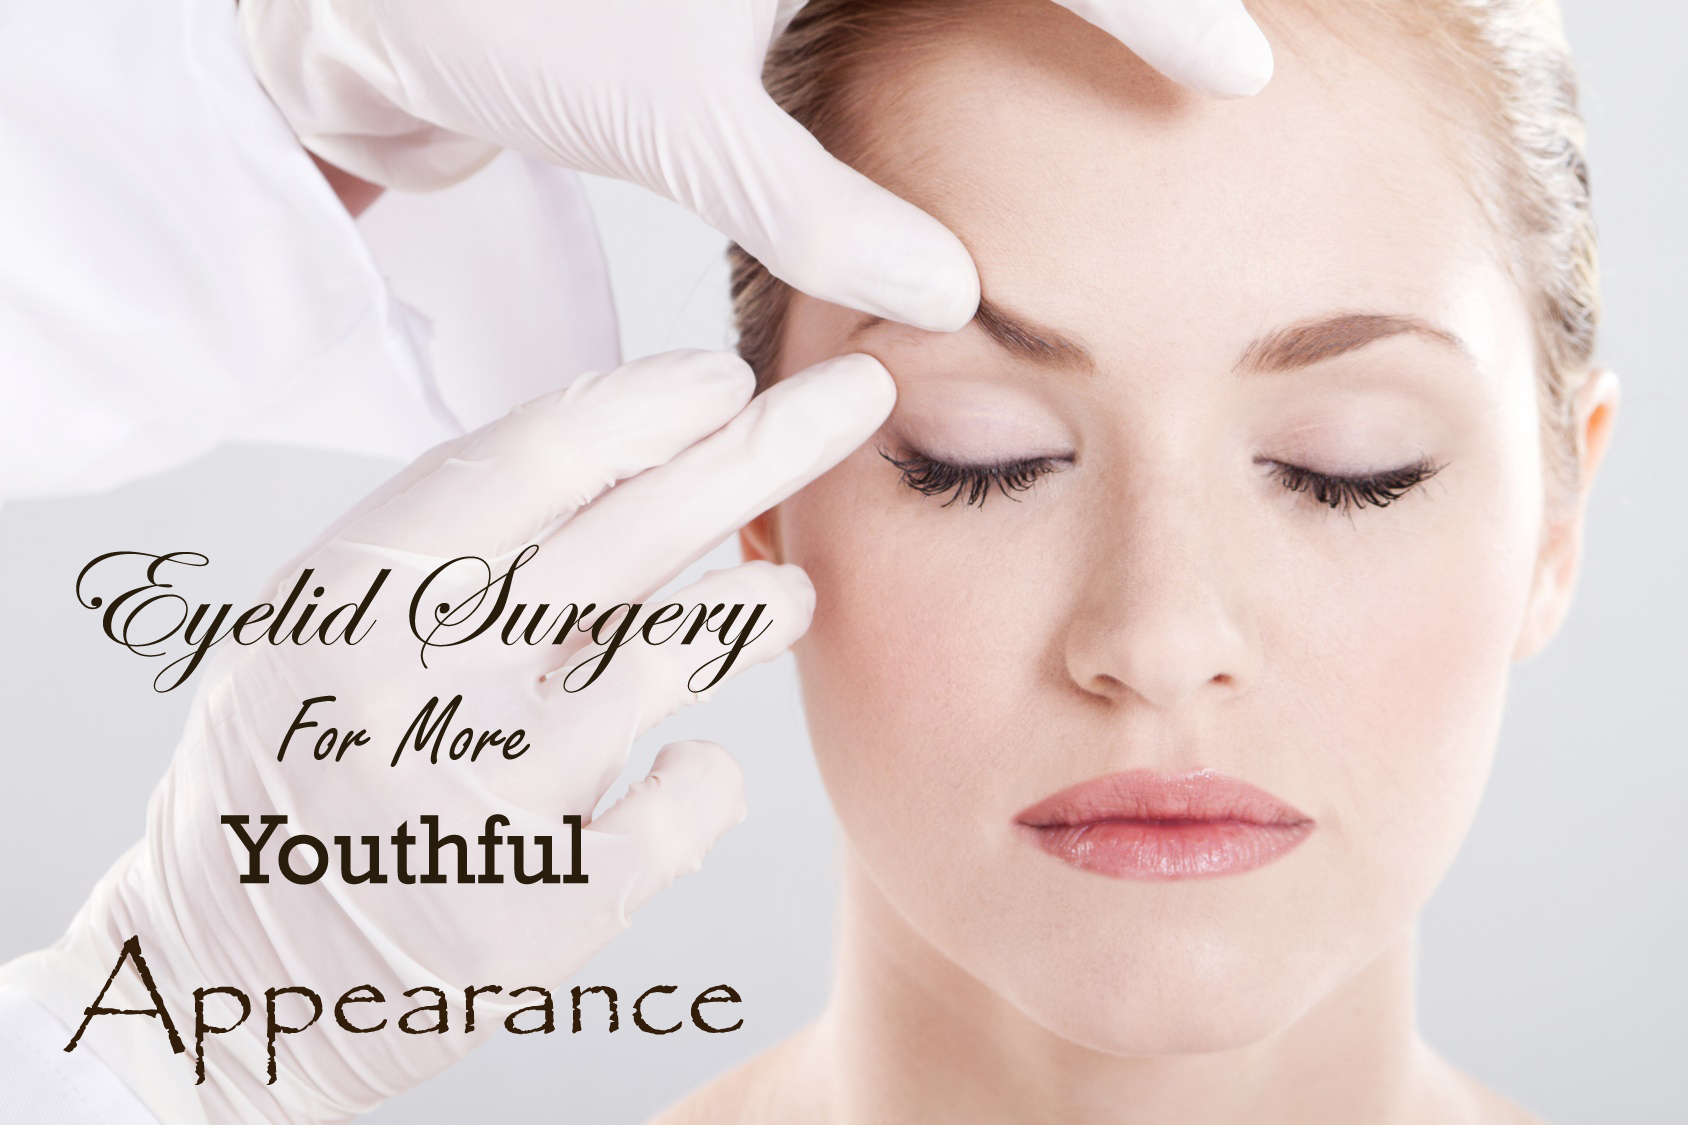 Eyelid Surgery For More Youthful Appearance